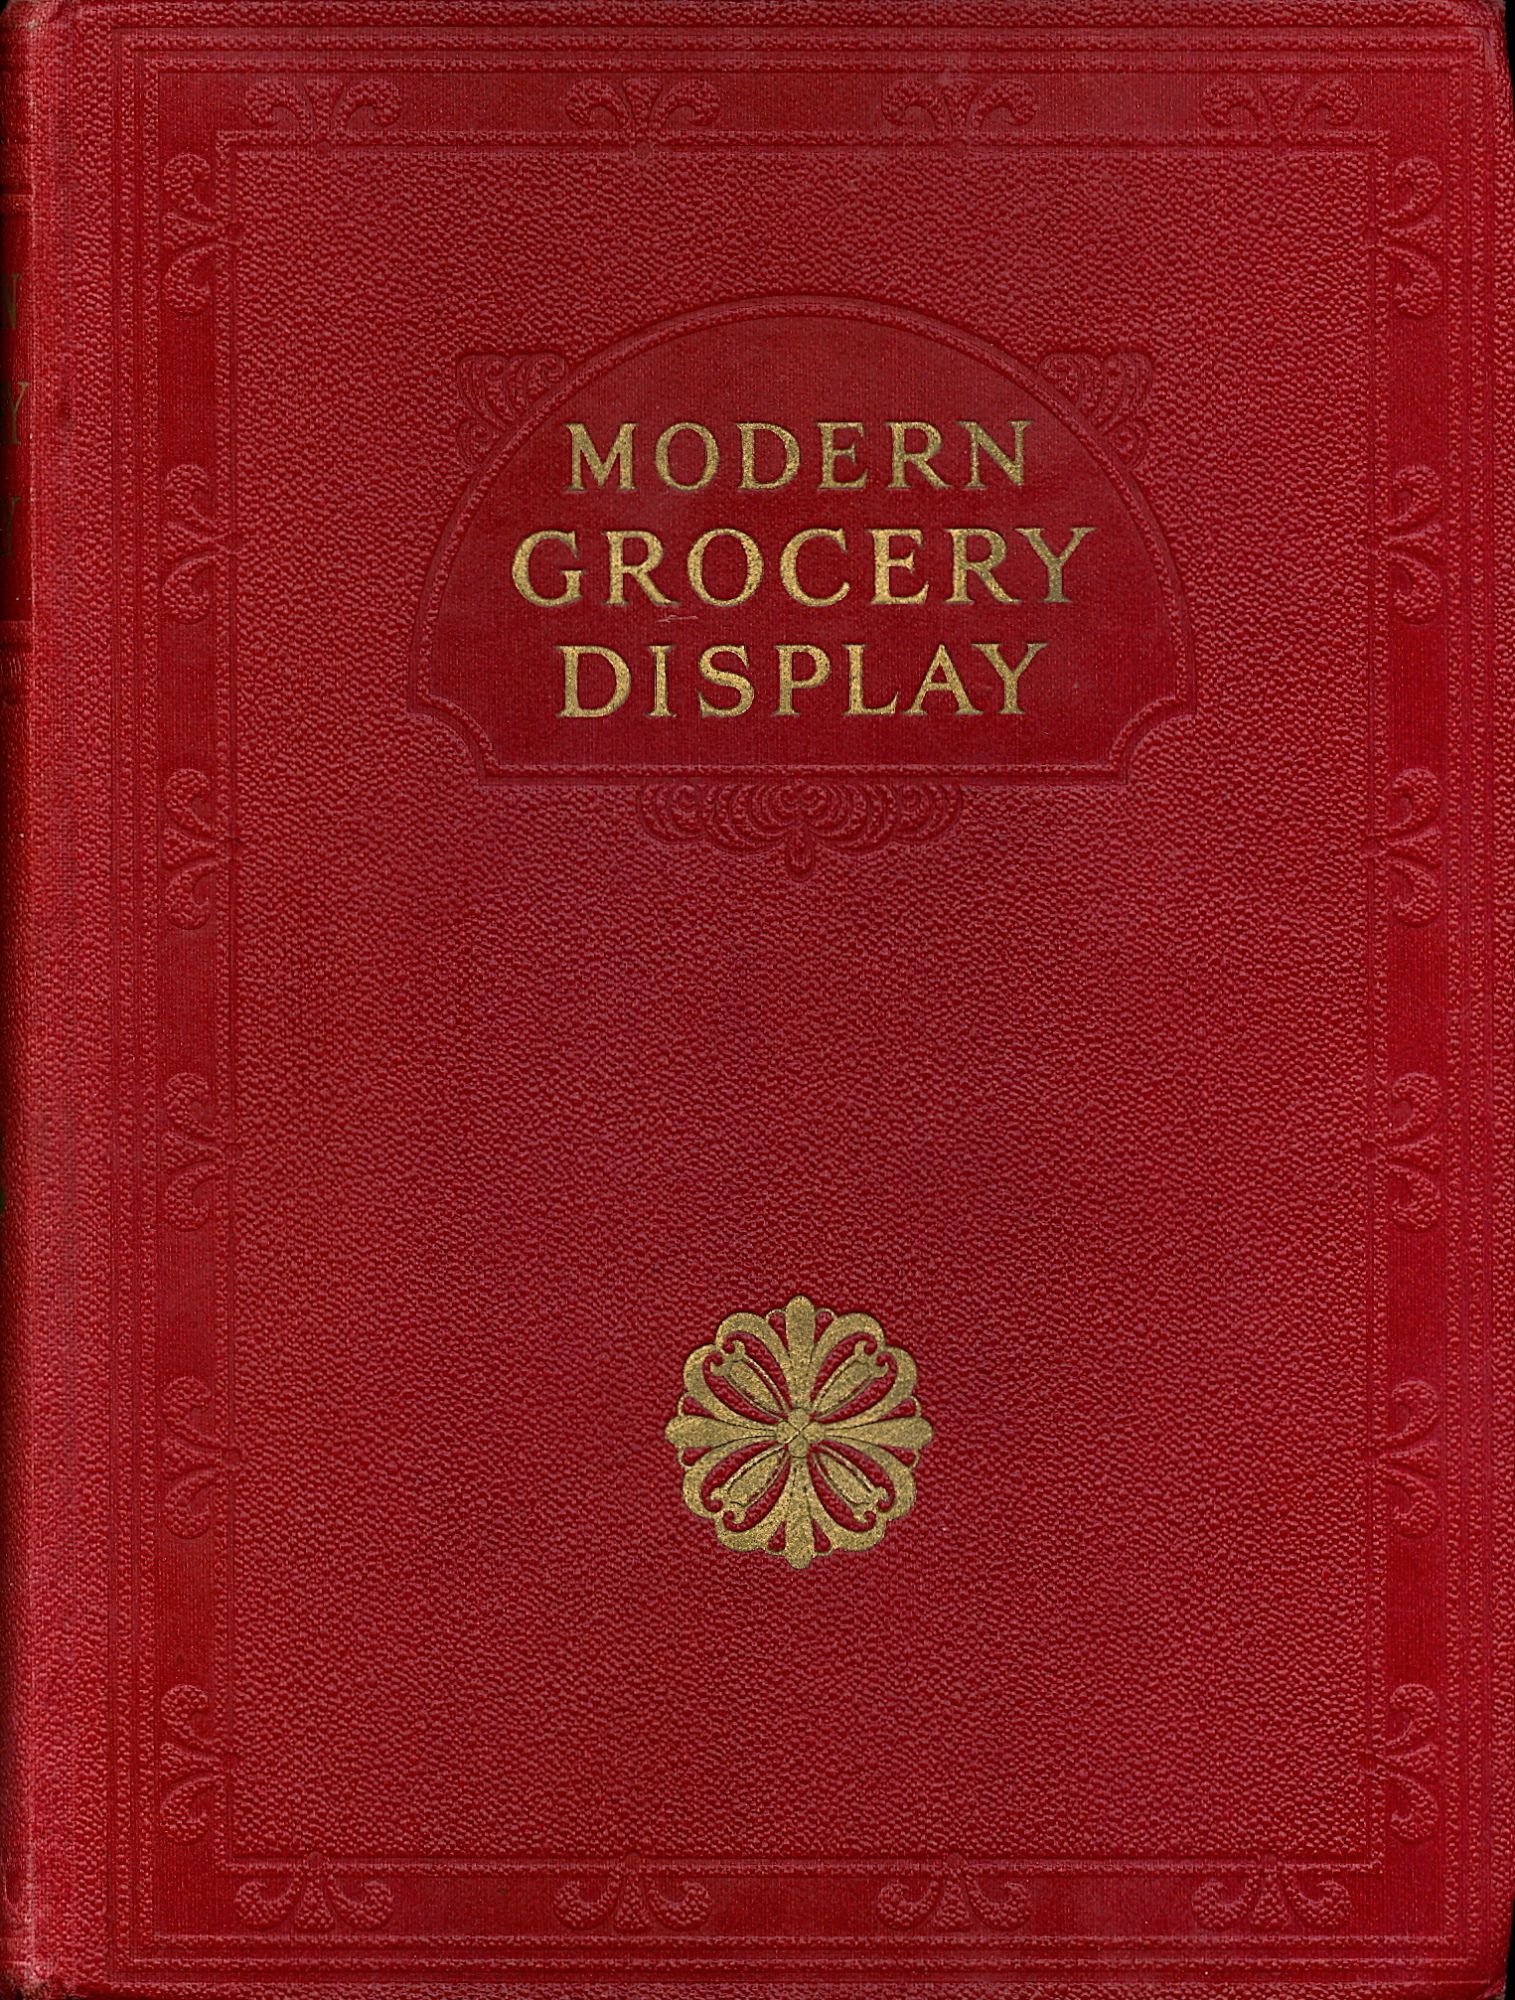 Modern Grocery Display: A Practical Work on Window Dressing and Interior Display. C. L. T. Beeching.